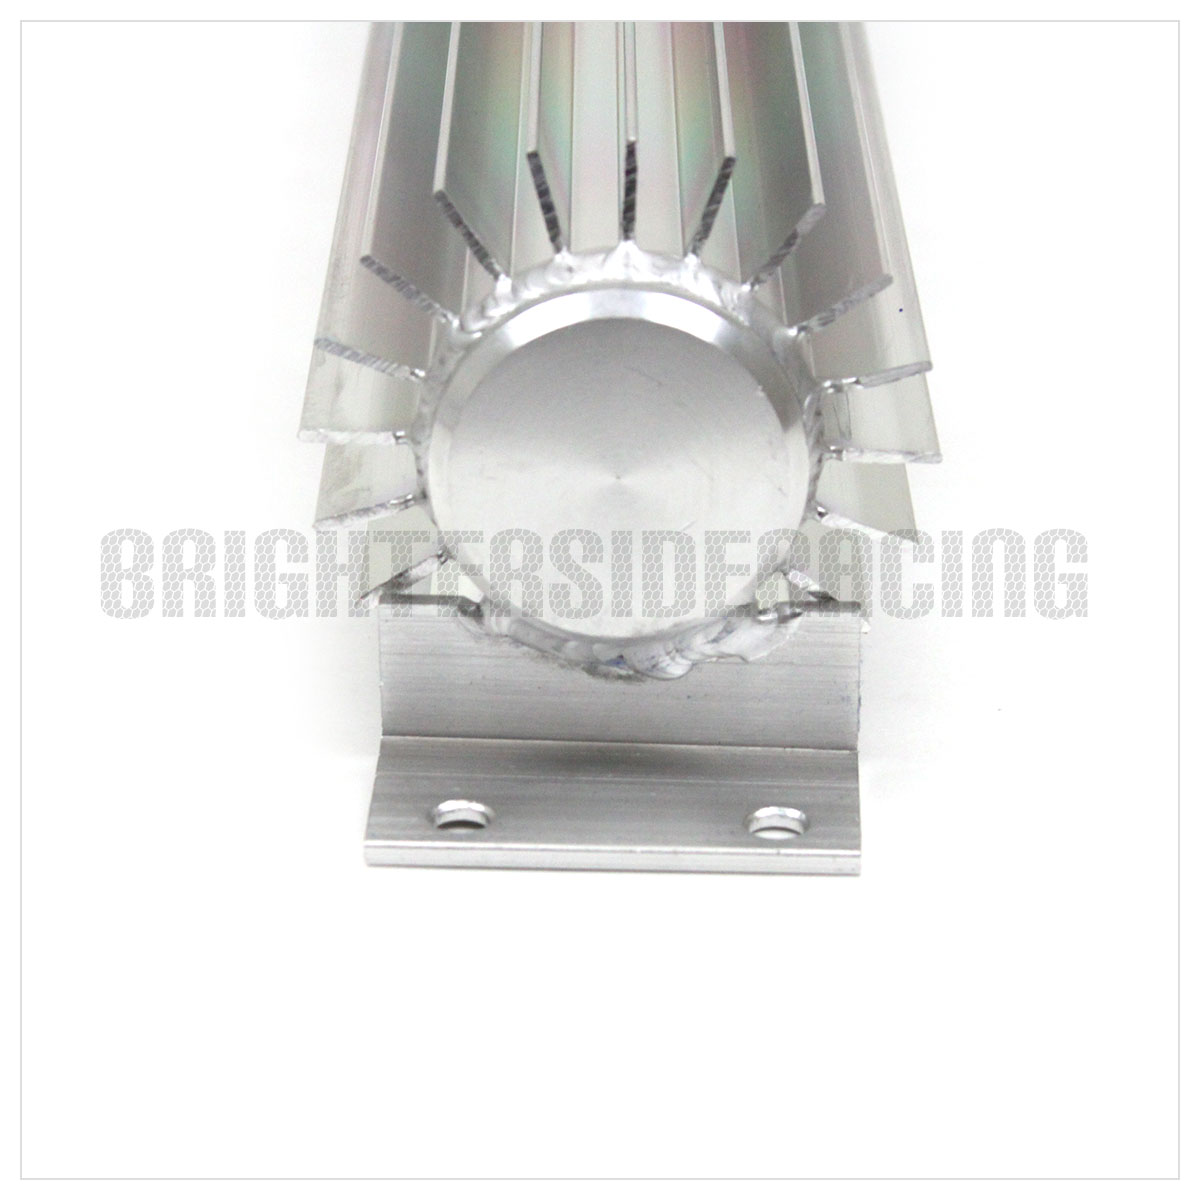 """12/"""" HOT ROD USA ALUMINUM DUAL PASS TRANSMISSION COOLER SILVER 0.5/"""" BARB FITTINGS"""